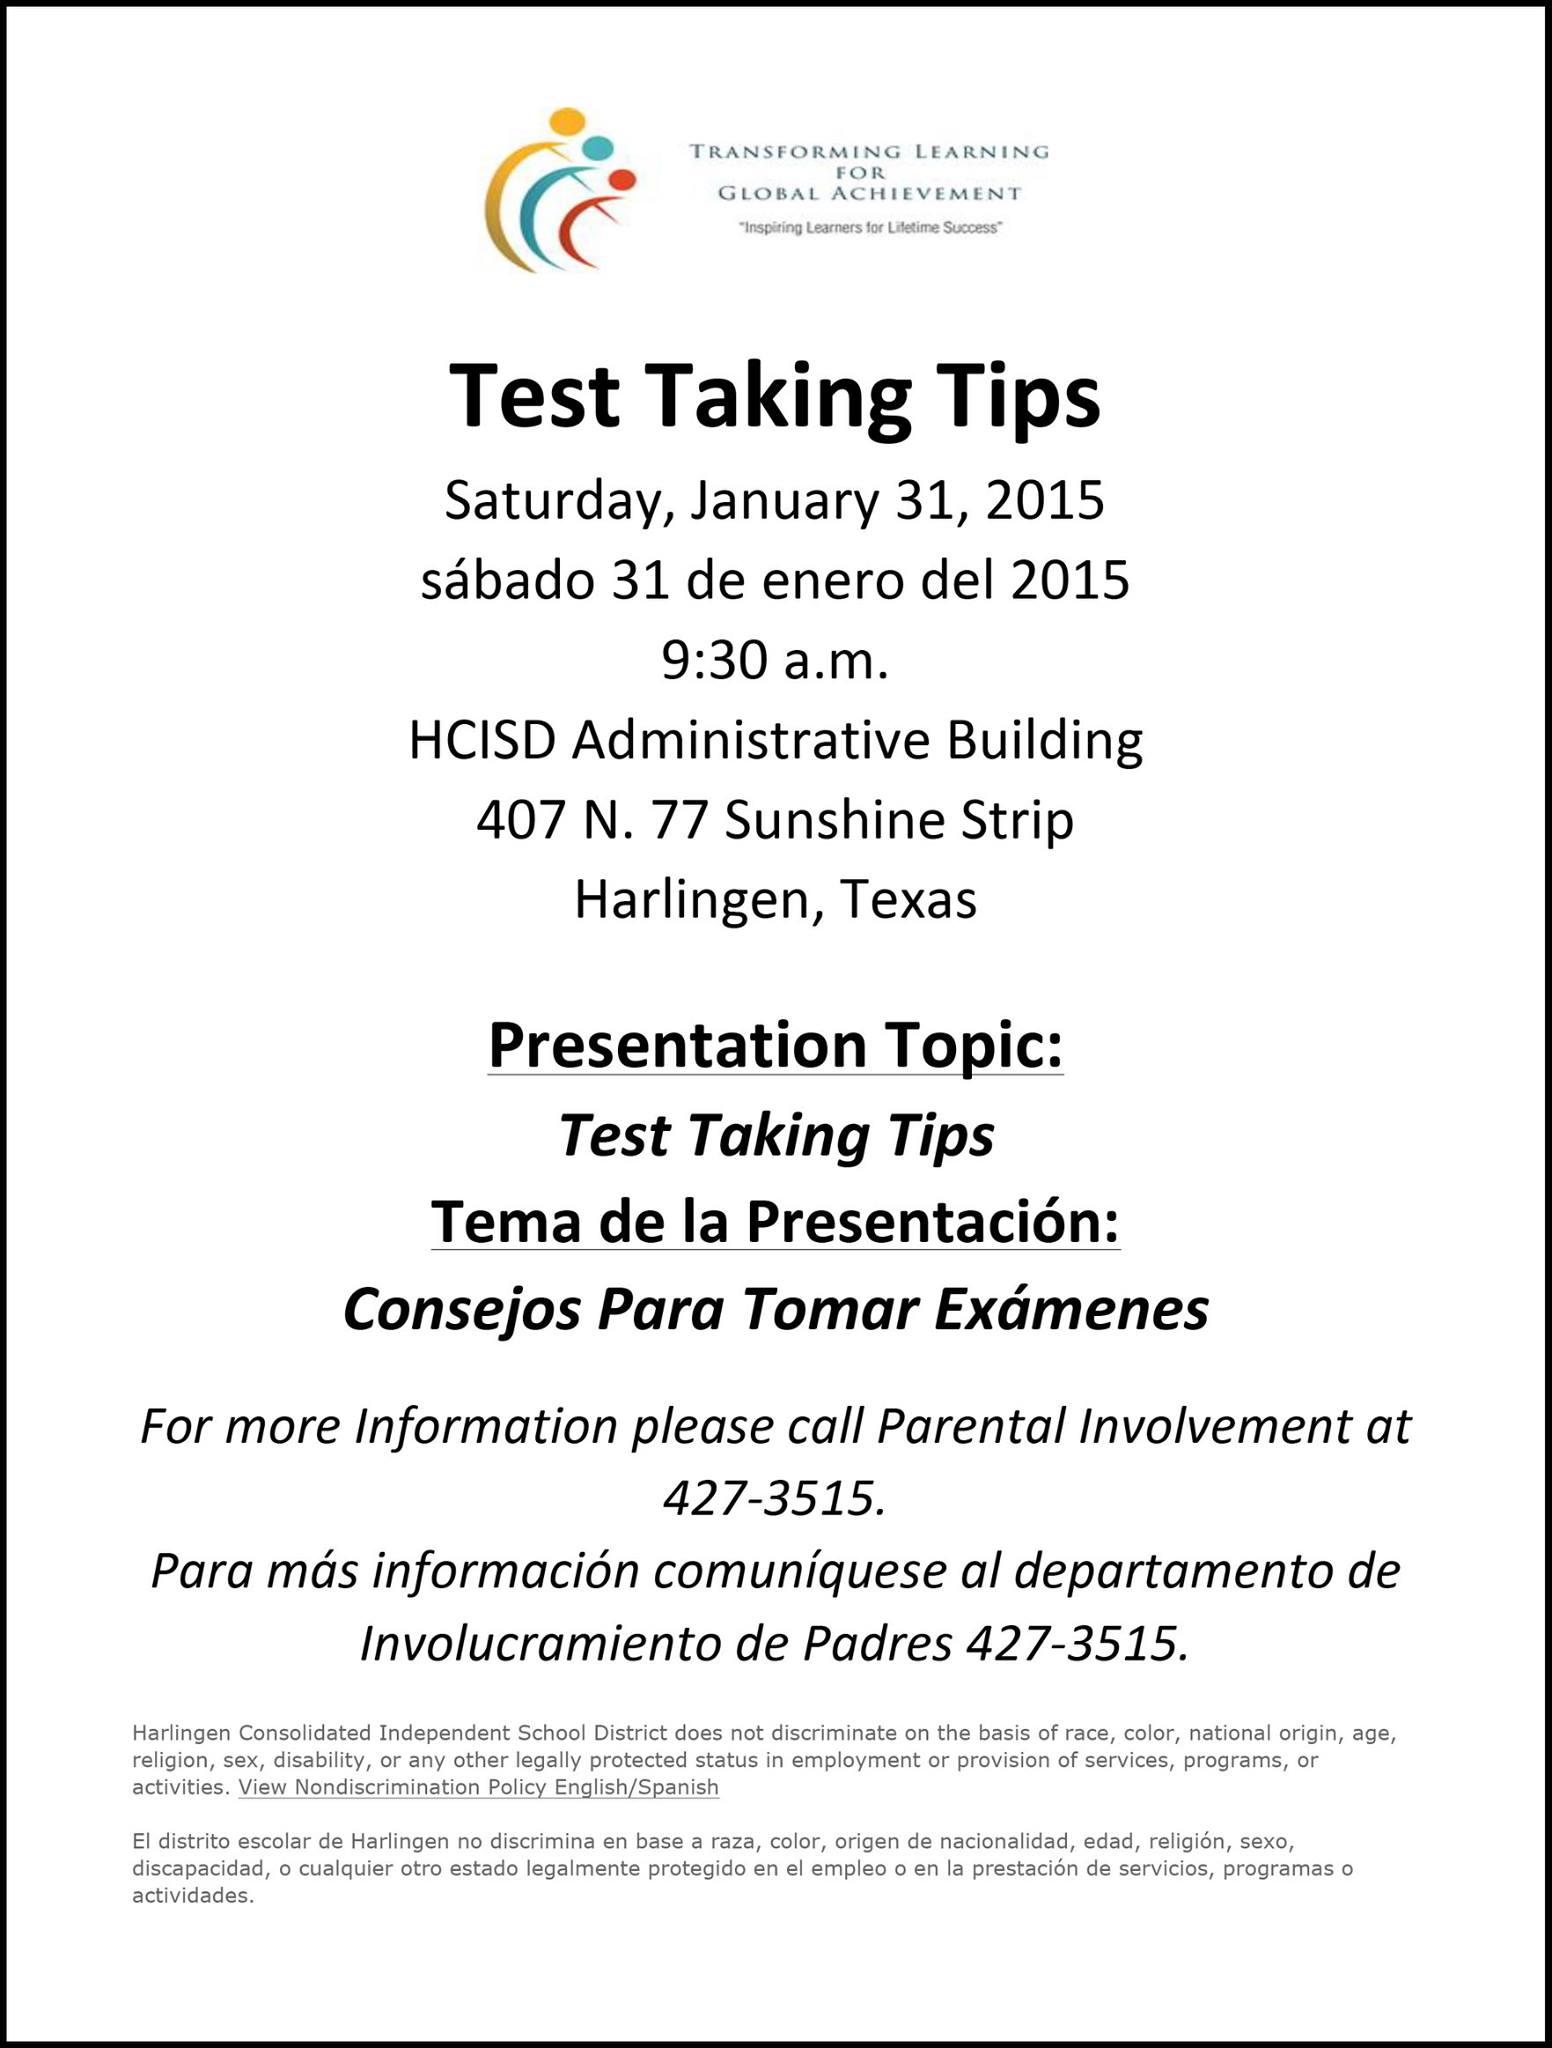 HCISD parents and students invited to Test Taking Tips workshop